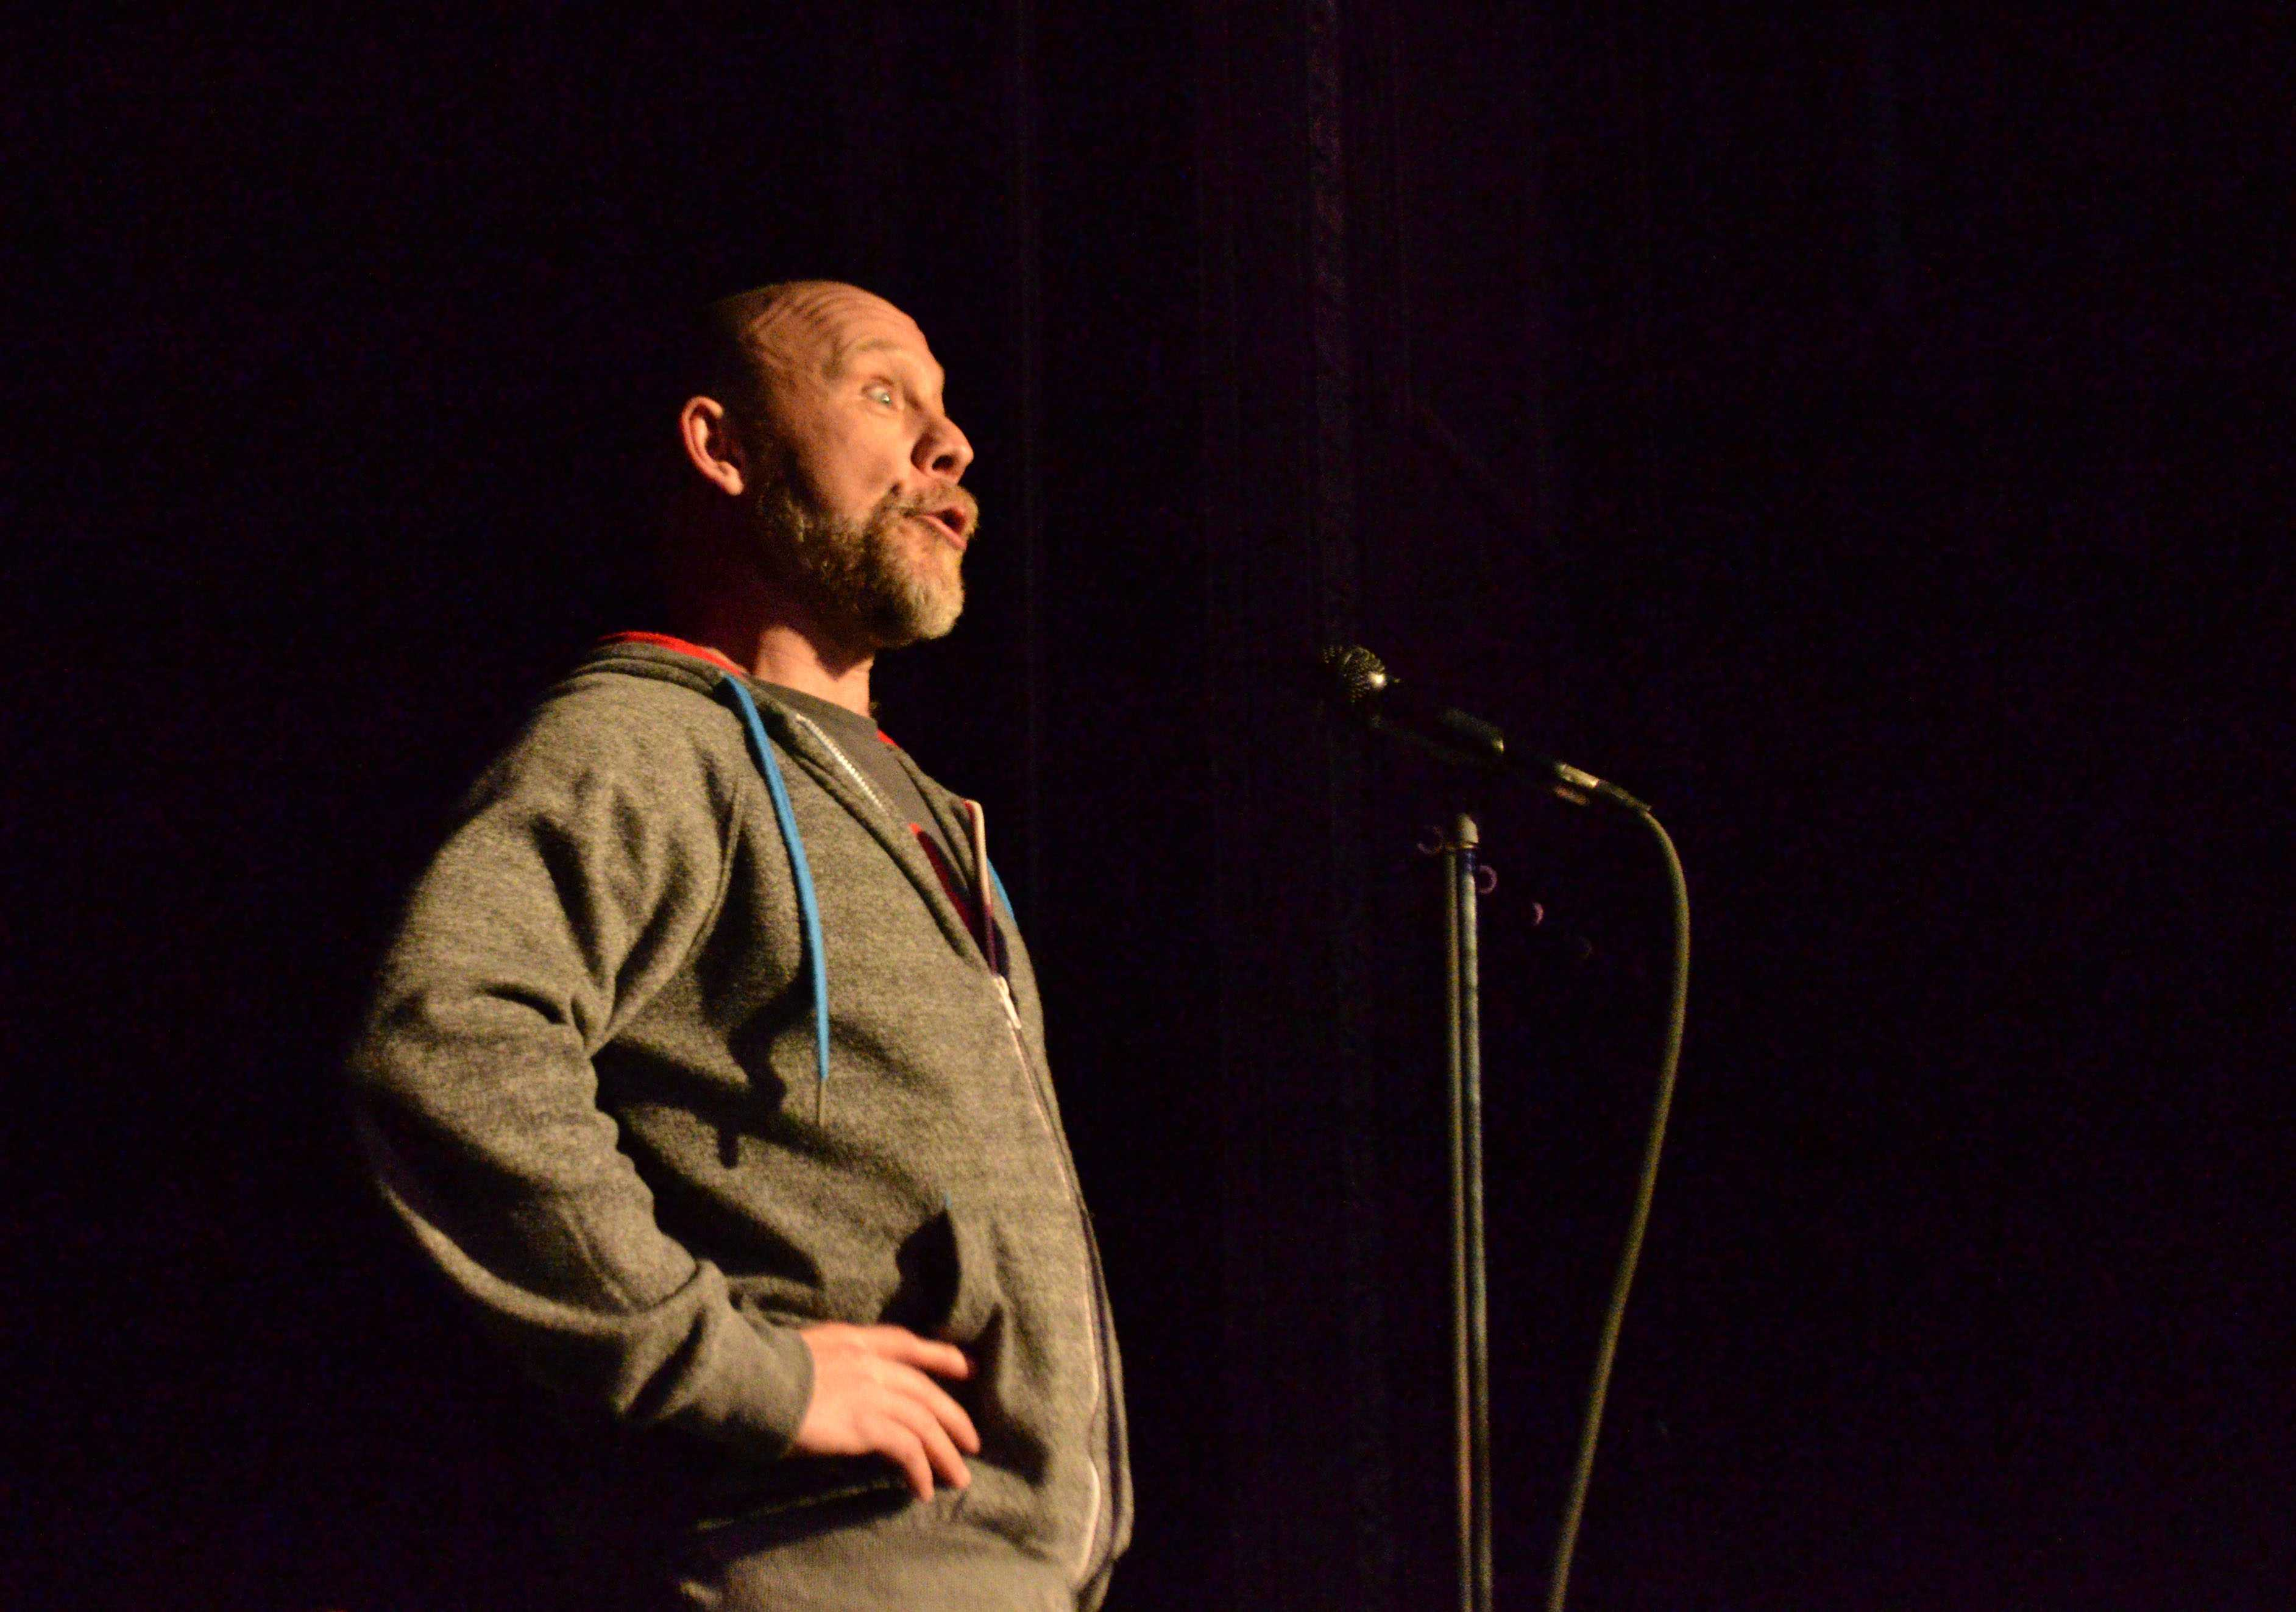 Featured poet, Buddy, interludes the competing poets at the slam